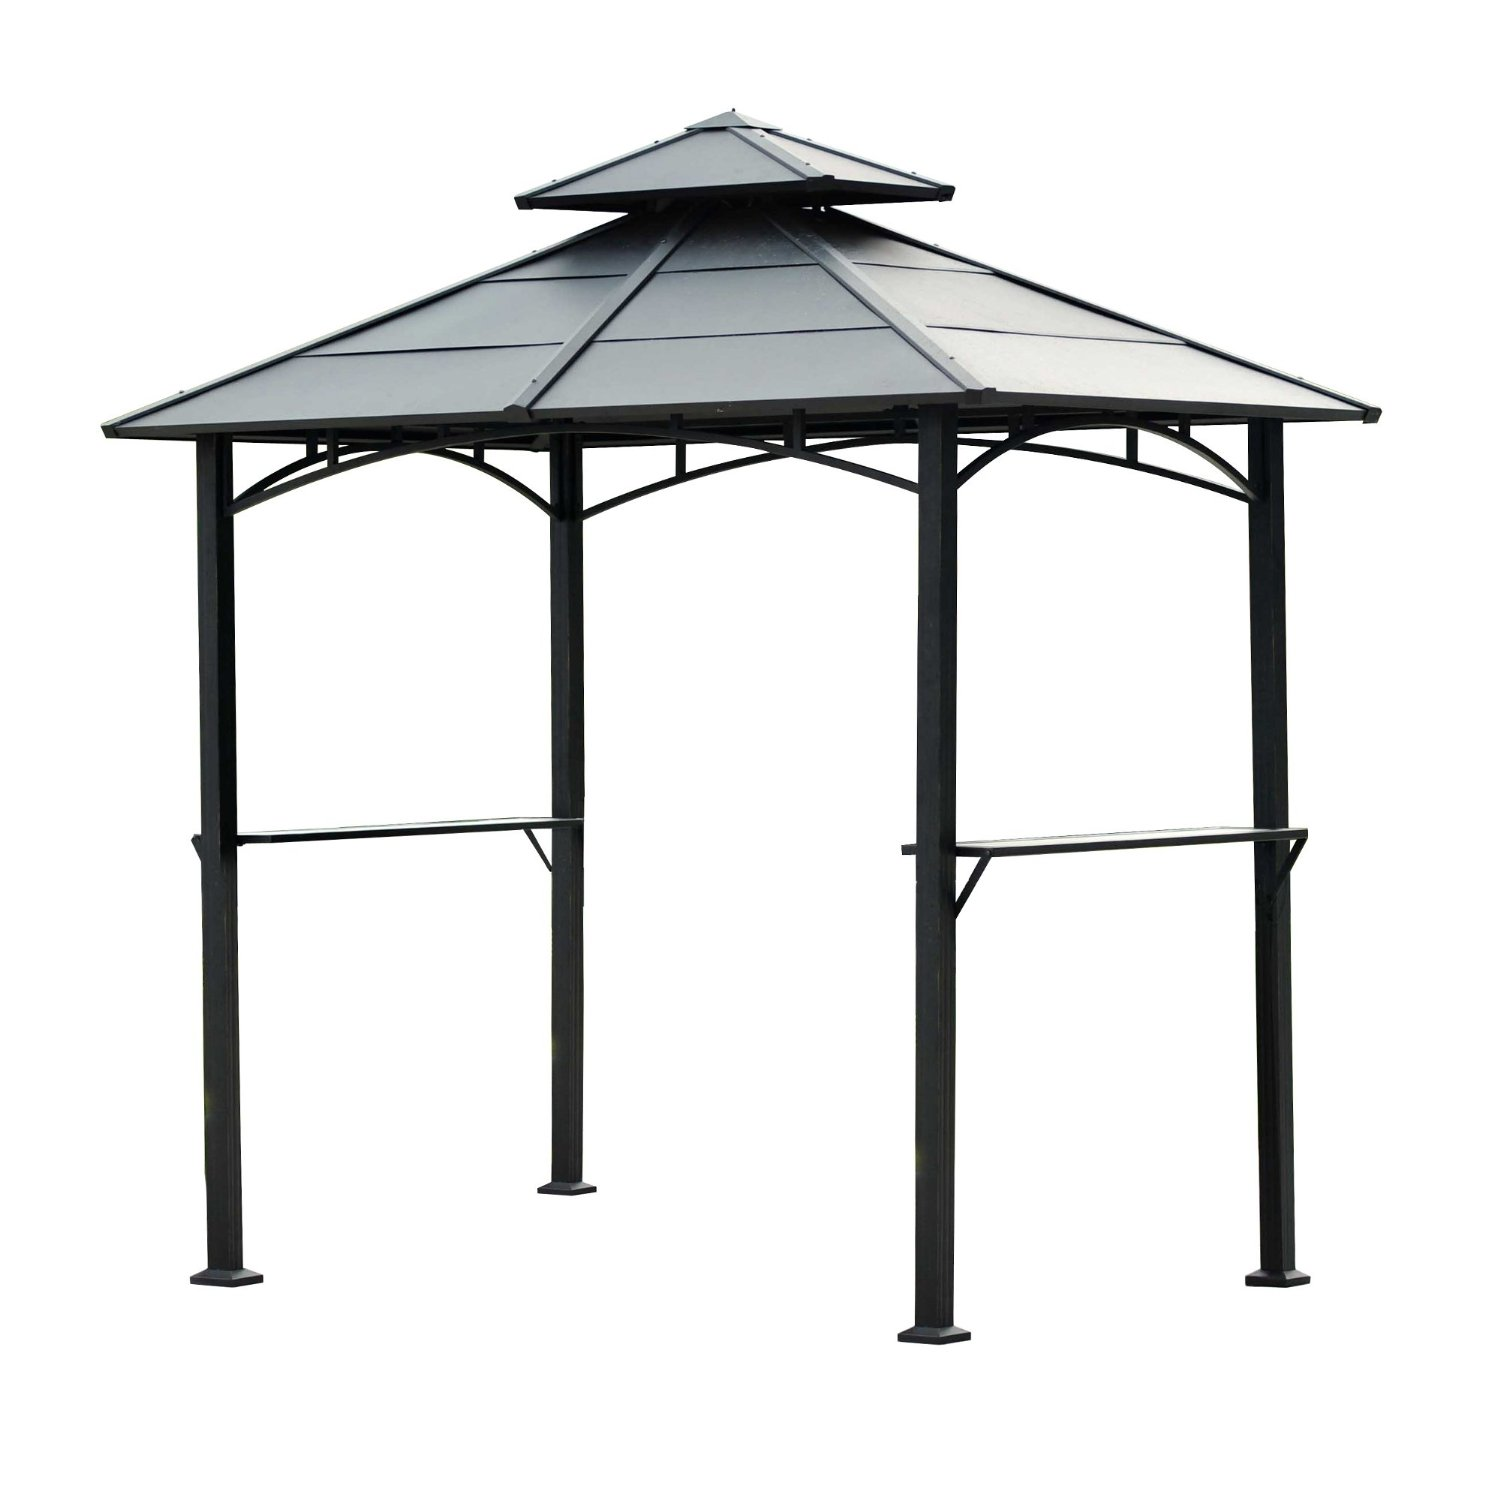 The Lancaster  sc 1 th 225 & Hardtop Gazebos: Best 2018 Choices Sorted by Size